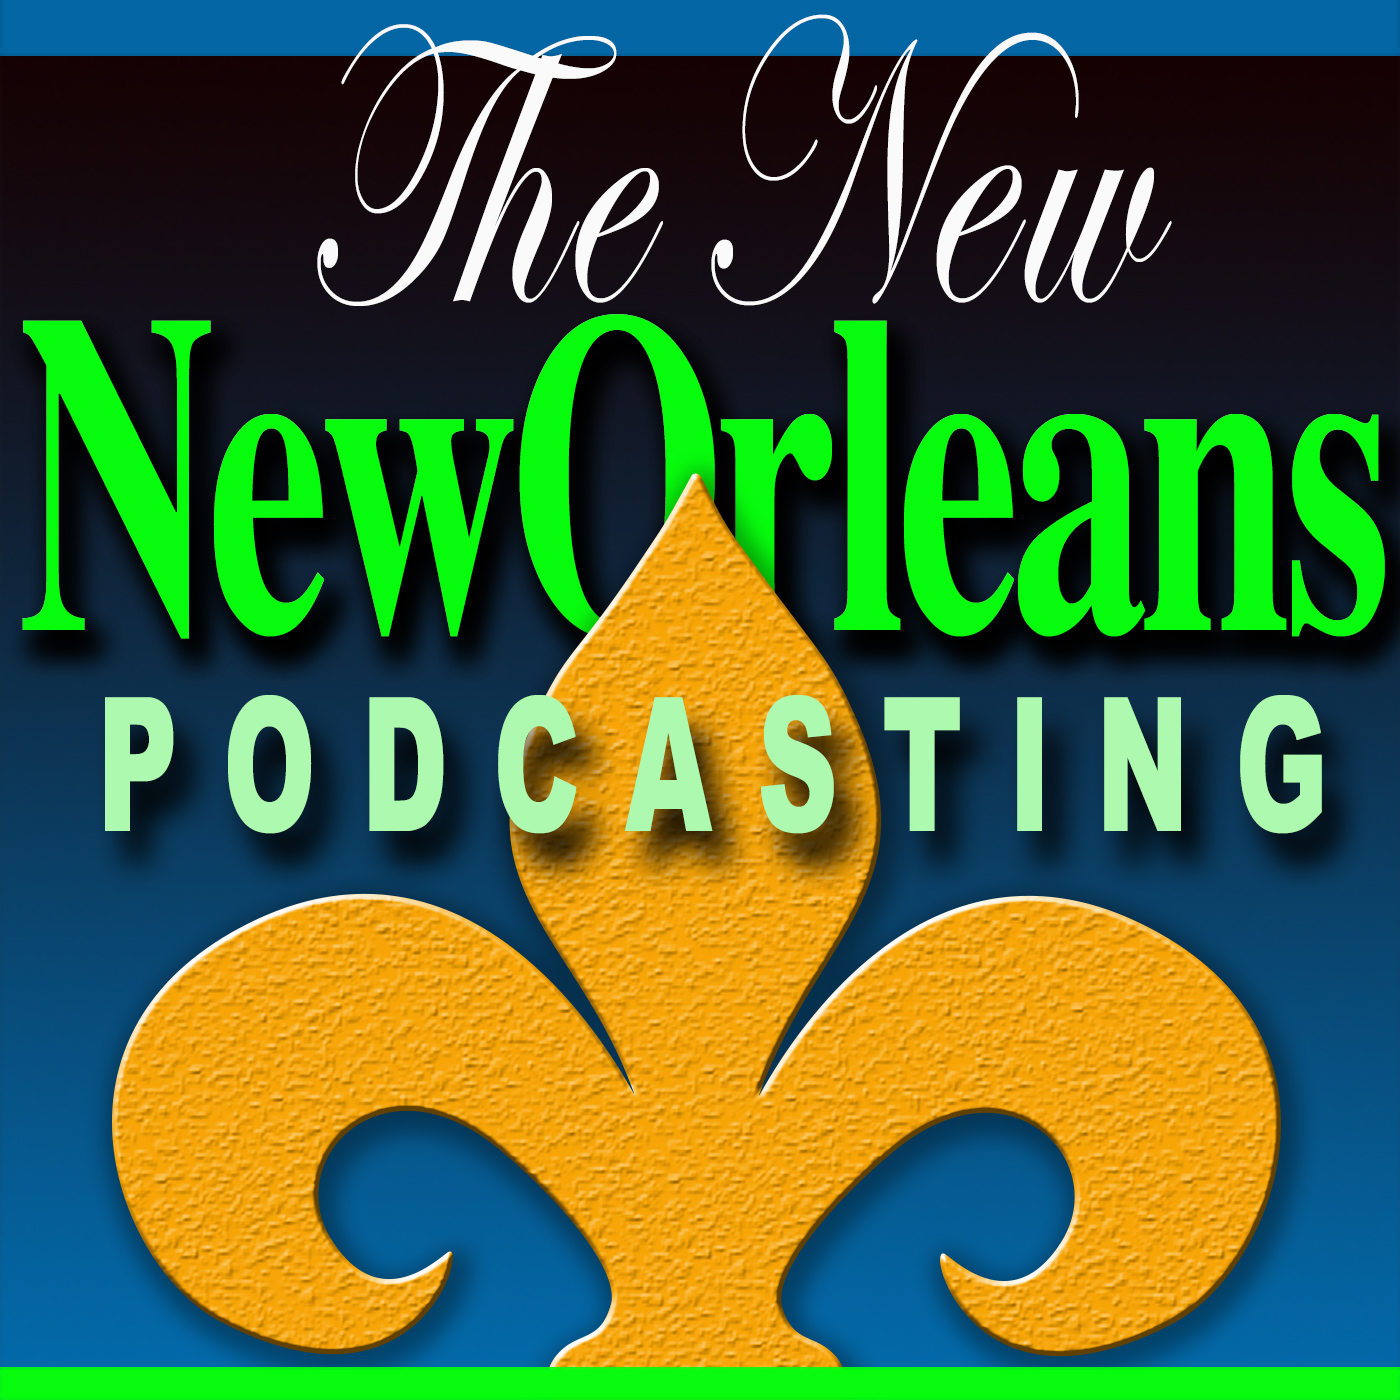 New Orleans Podcasting show art